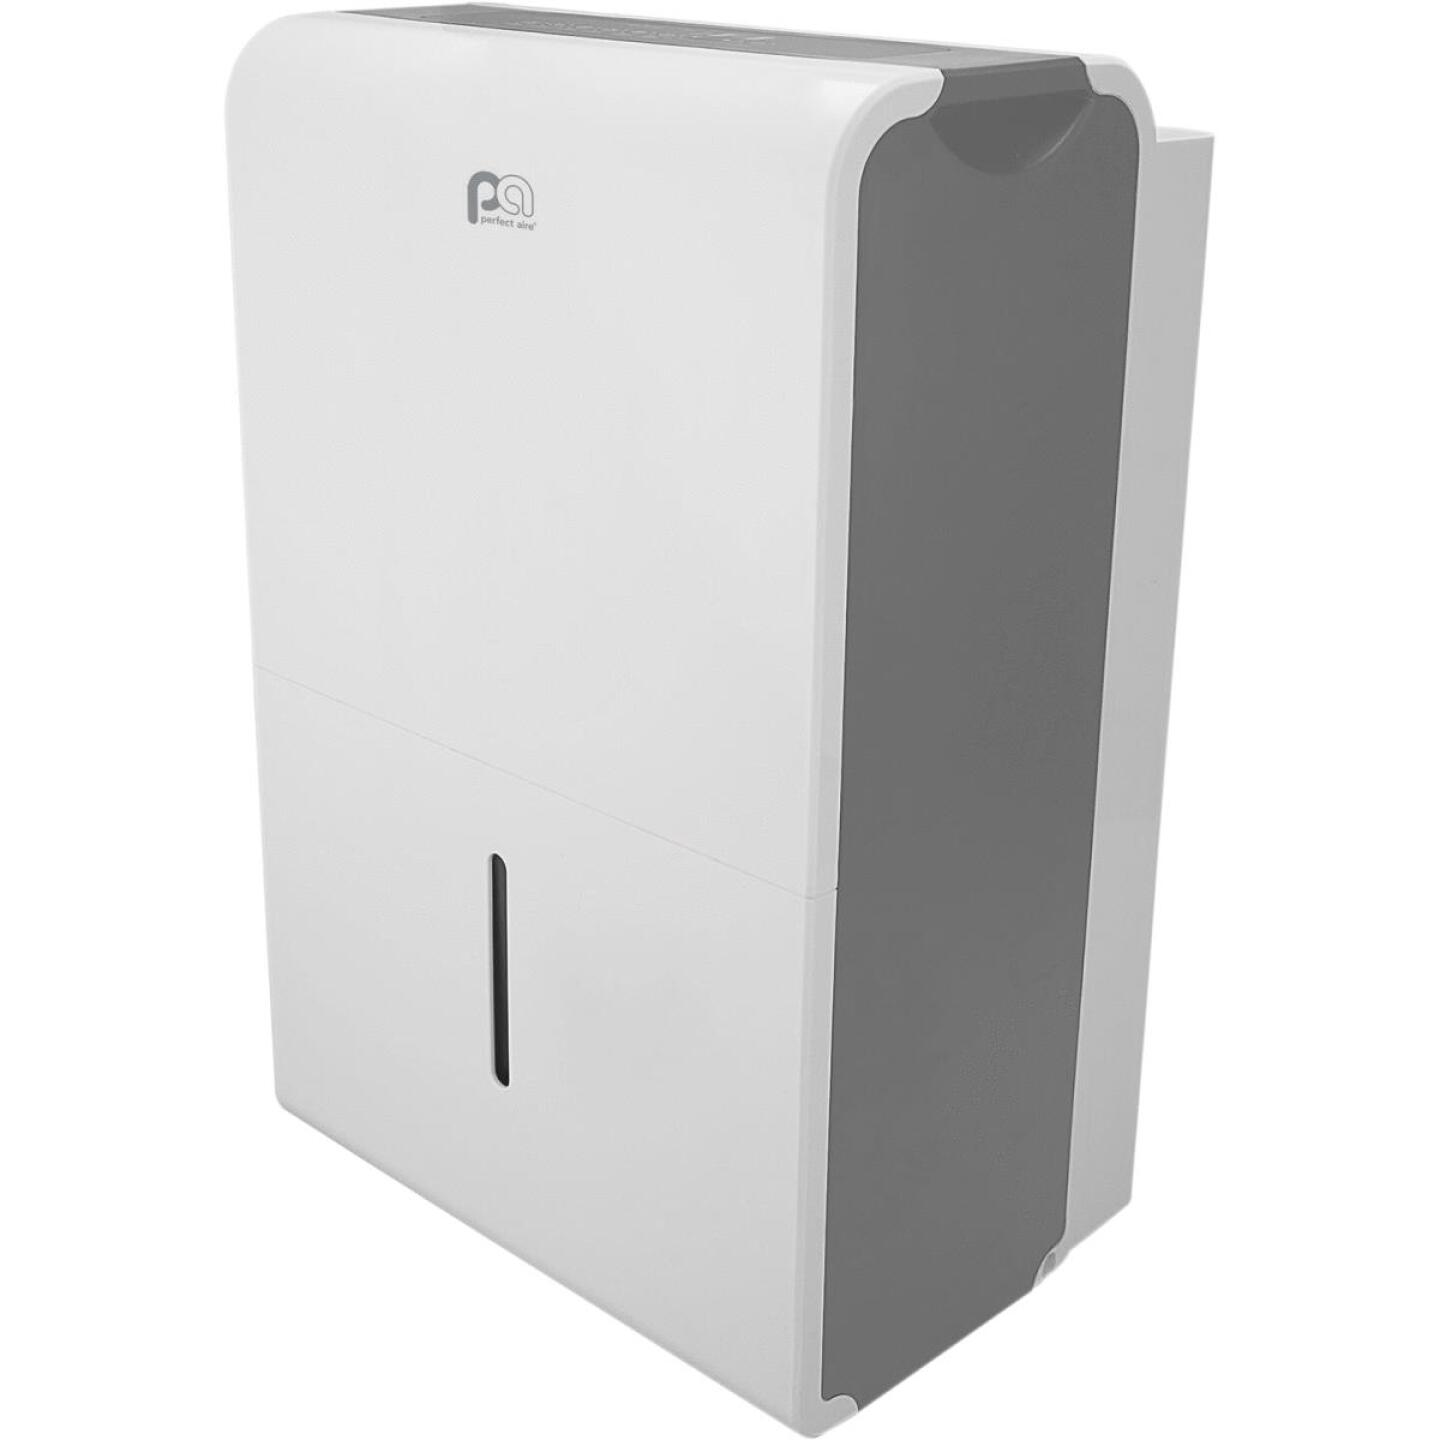 Perfect Aire 35 Pt.Day 2-Speed Flat Panel Dehumidifier Image 1